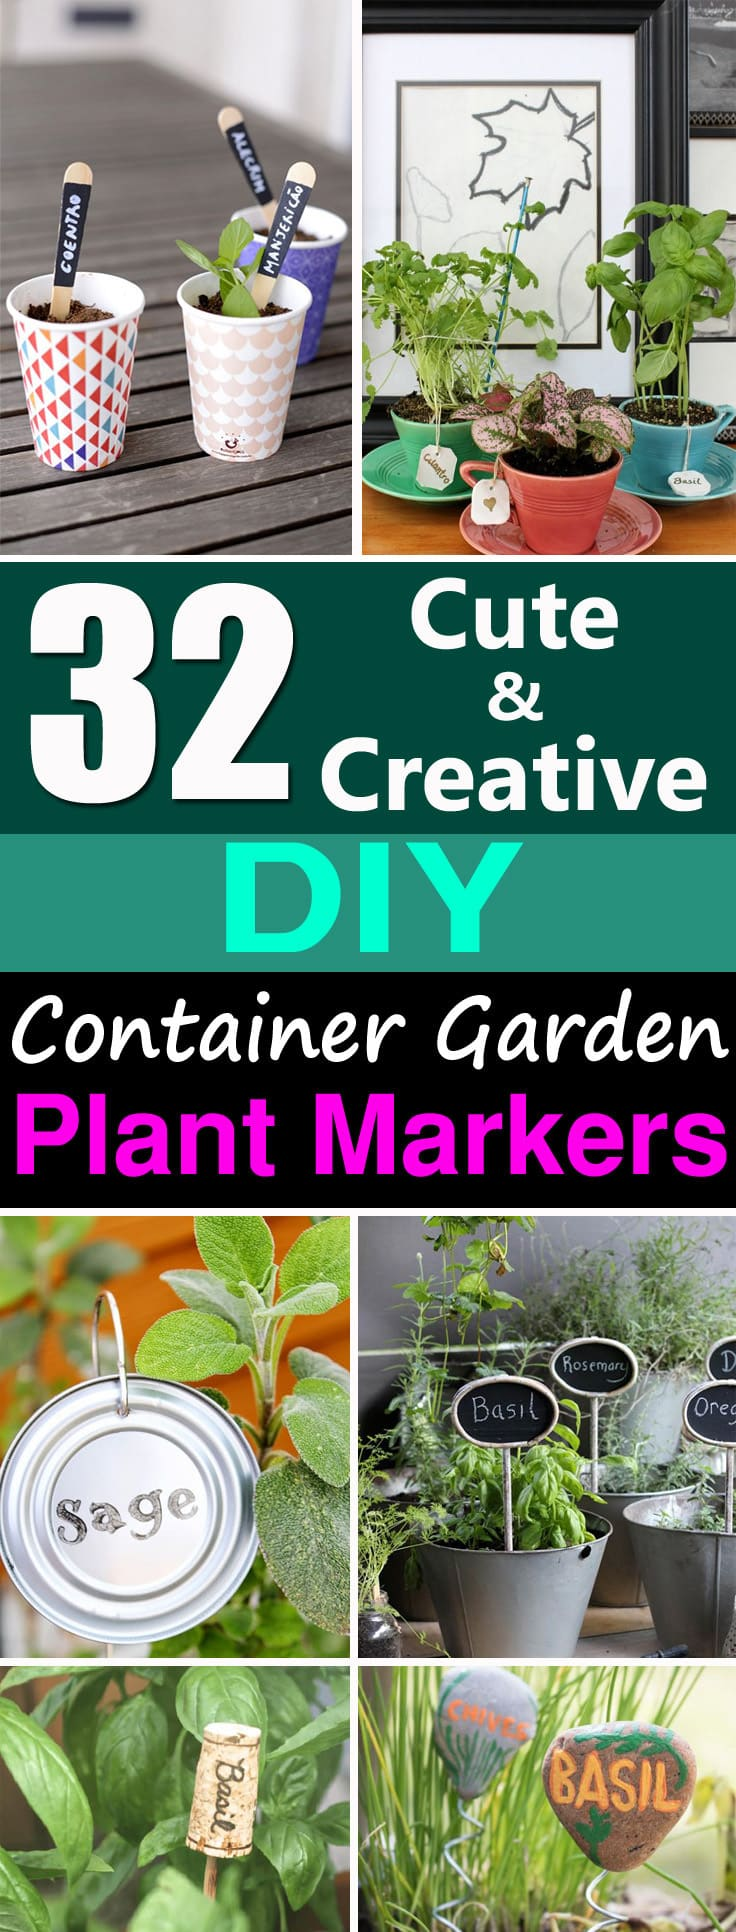 32 Cute Diy Plant Marker Ideas For Container Gardeners